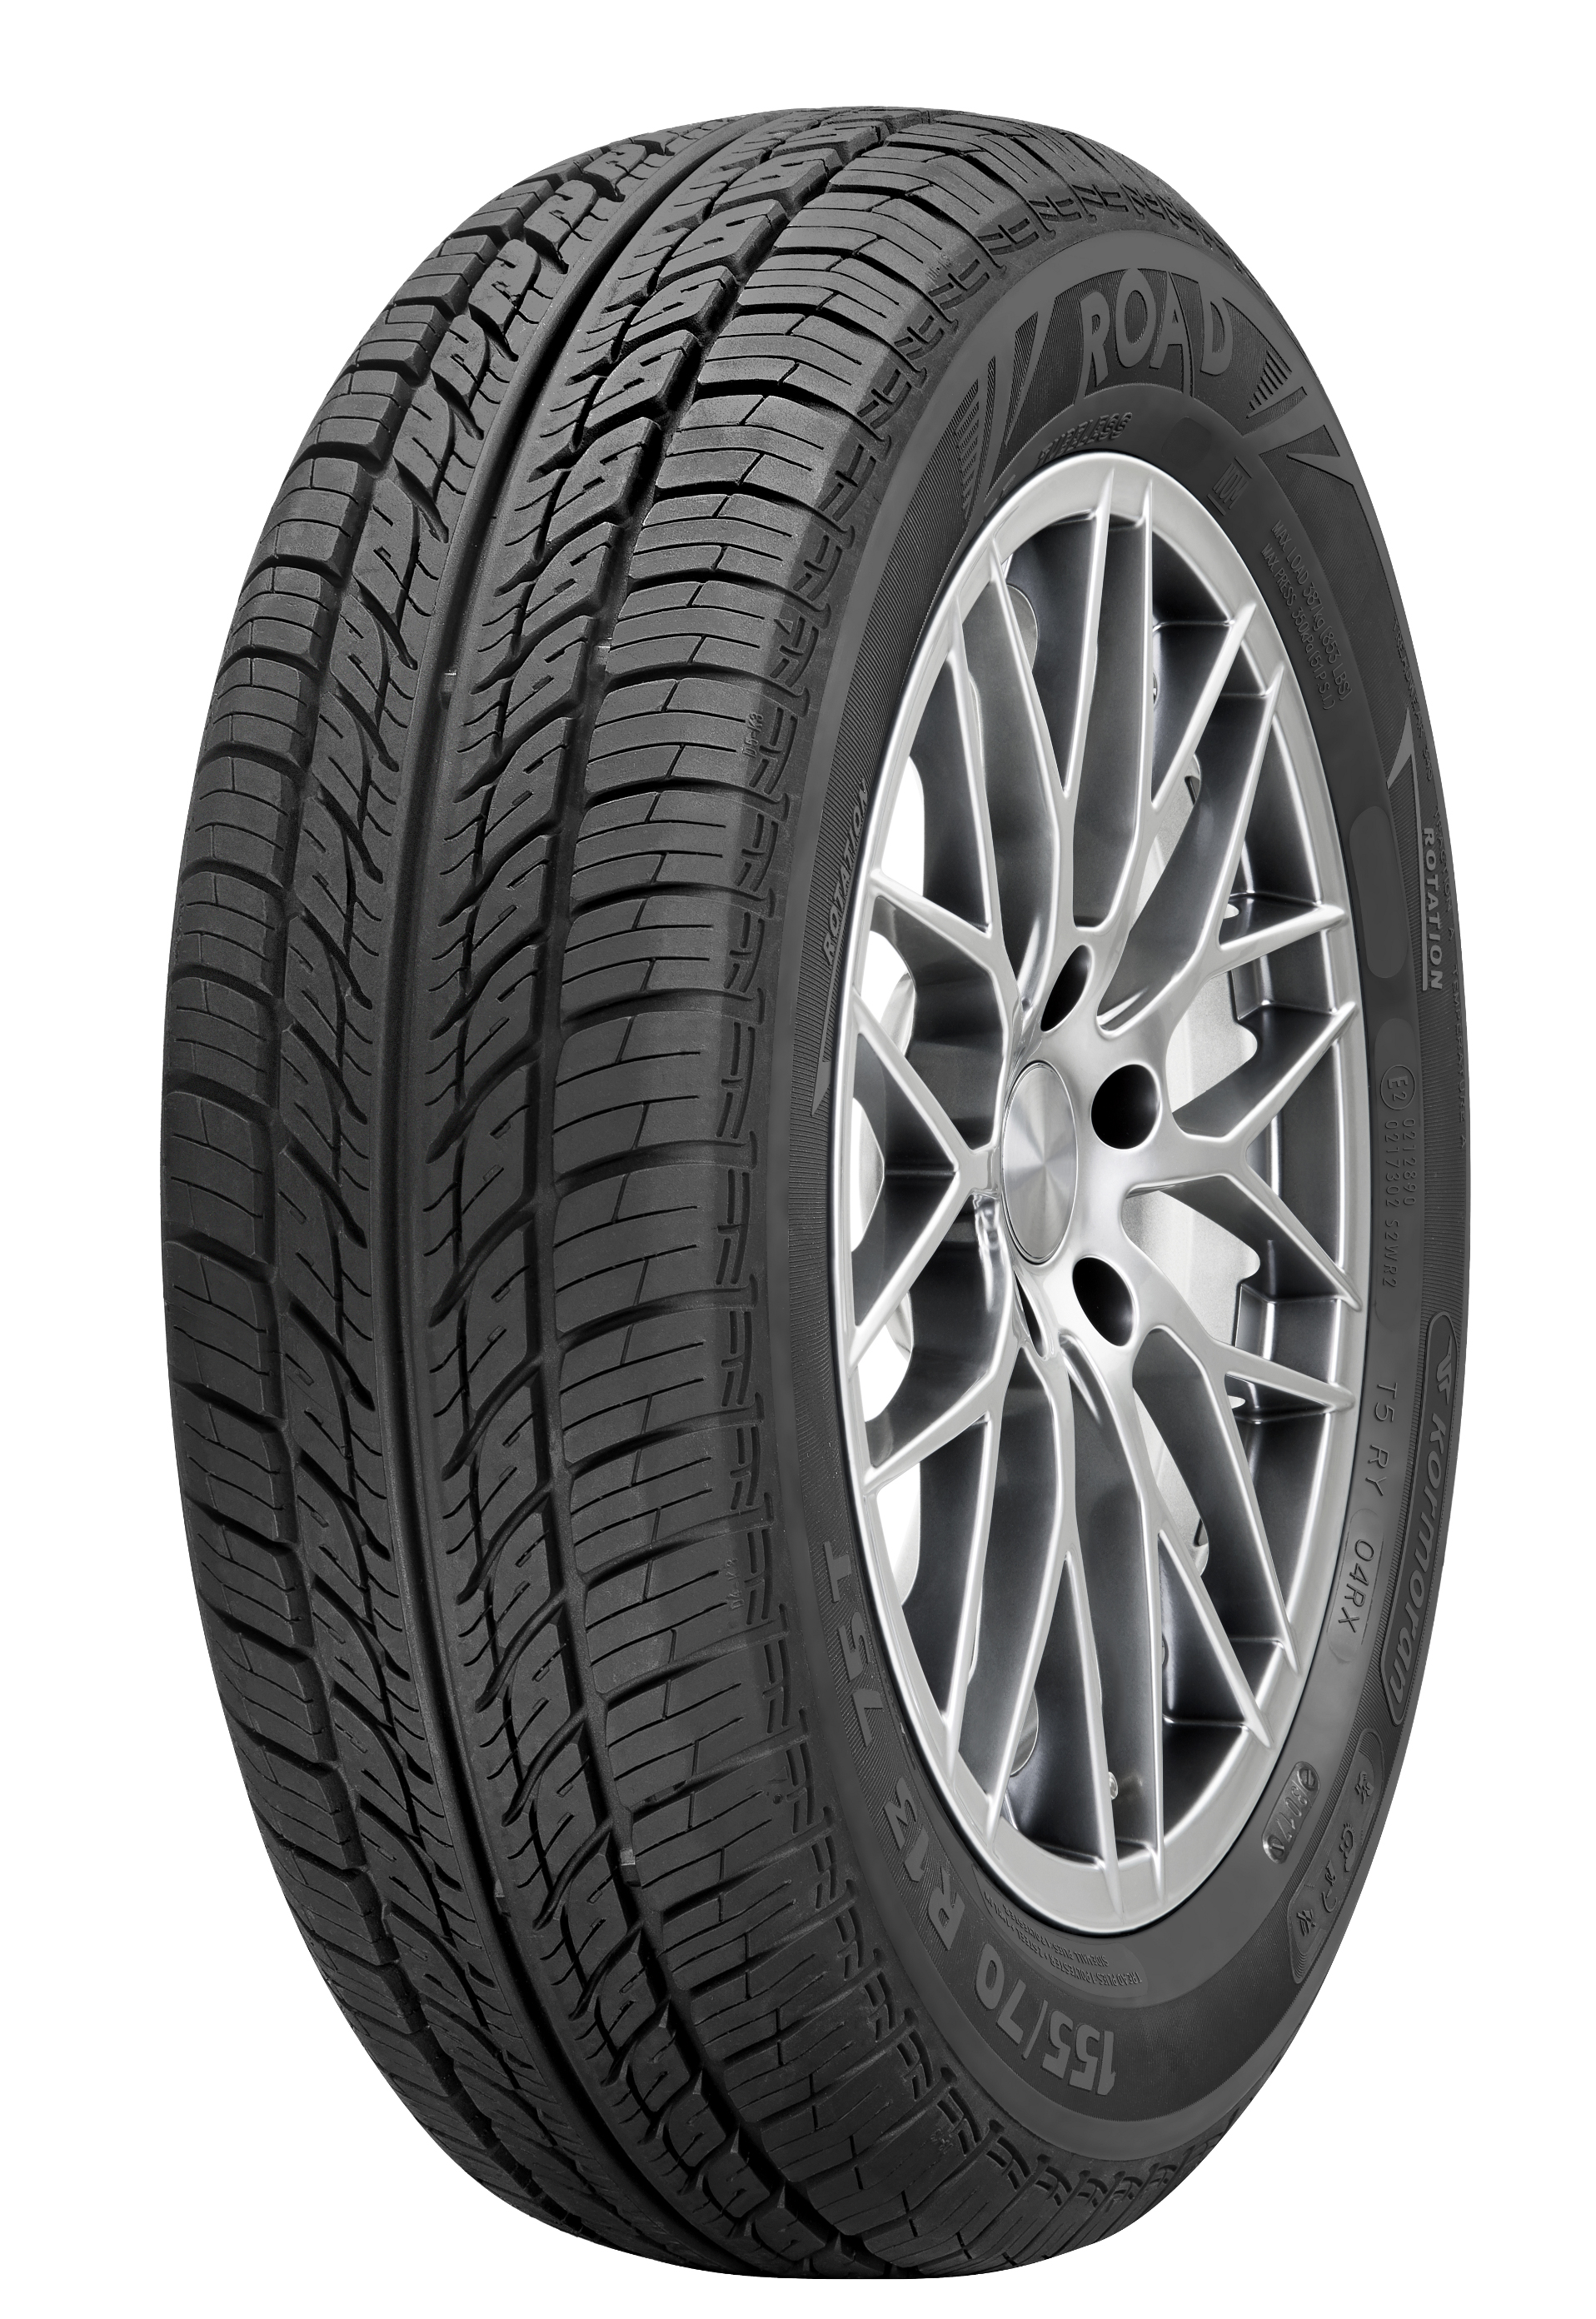 175/70R14 KORMORAN ROAD 88T XL